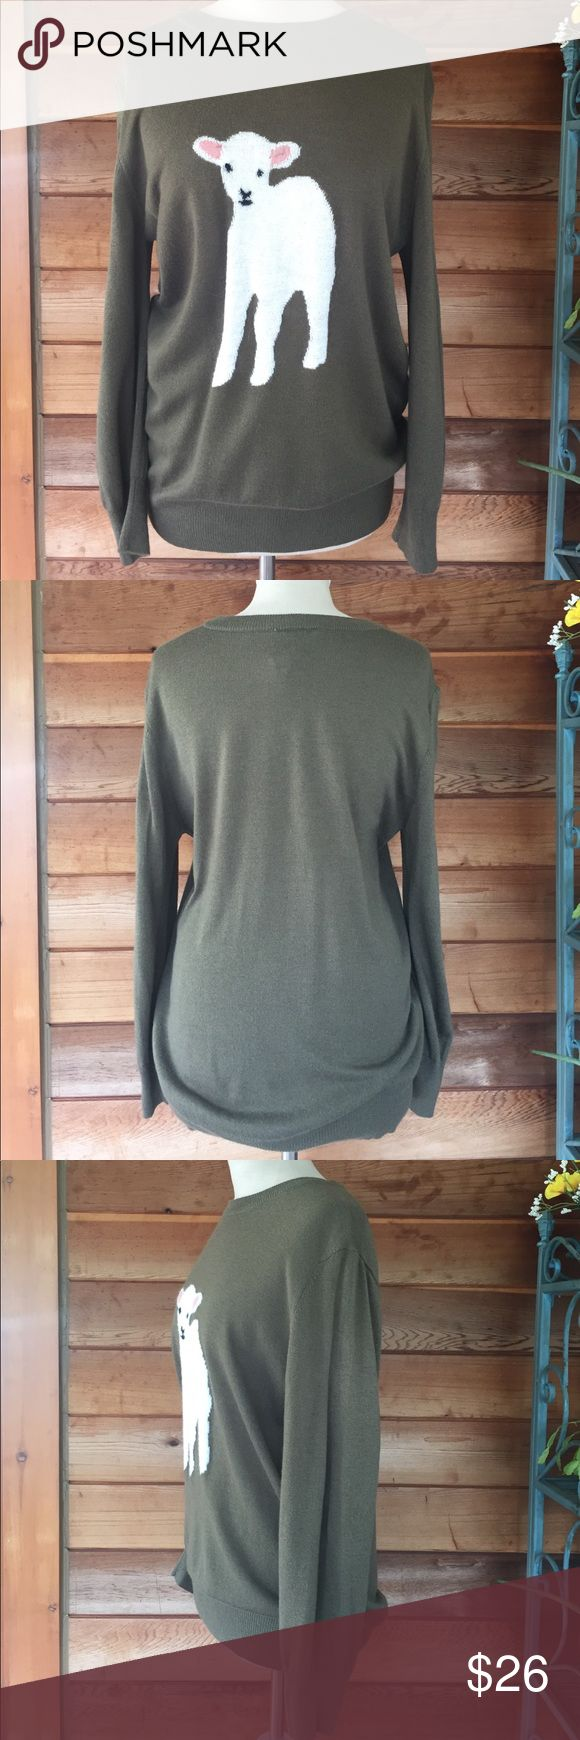 Peter Jensen Olive Green Wool Blend Sweater Super cute olive green soft lightweight sweater by Peter Jensen for Nordstrom. How sweet is that little lamb?? ♥️ size large; loose but flattering fit. Never worn; like new condition. Perfect for the upcoming fall season or beginning of spring! But you can wear it whenever you want! 😊 Peter Jensen Sweaters Crew & Scoop Necks